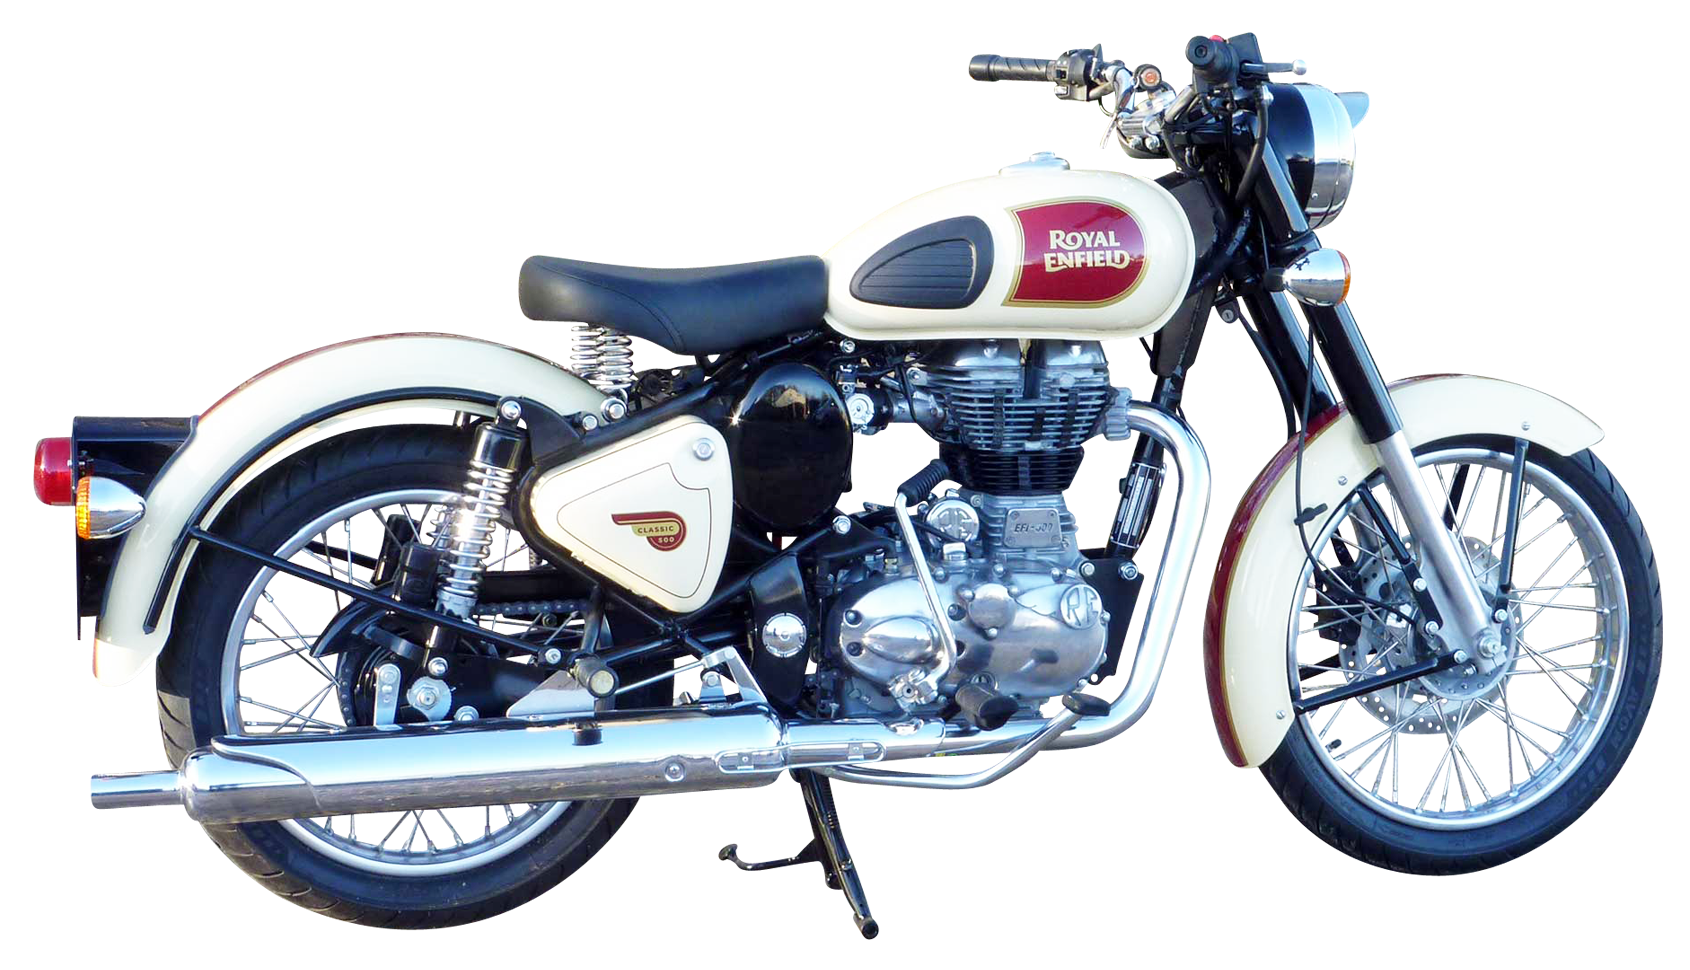 Royal Enfield Classic 500 PNG Image.